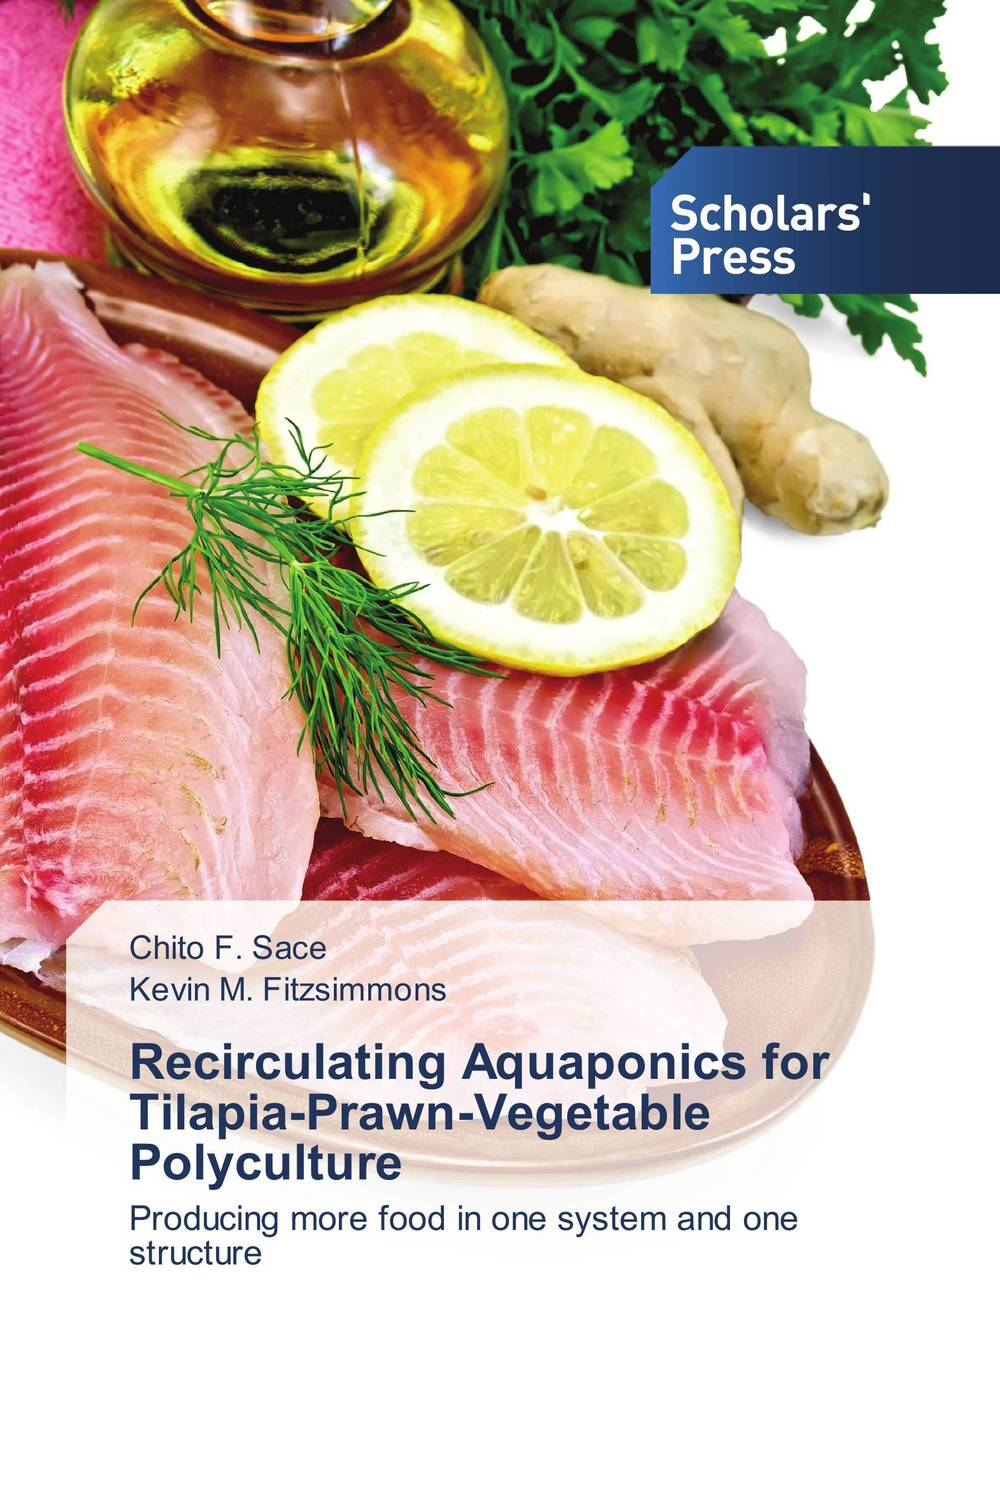 Recirculating Aquaponics for Tilapia-Prawn-Vegetable Polyculture yanmar parts the water pump thermostat type with reference 4tne88